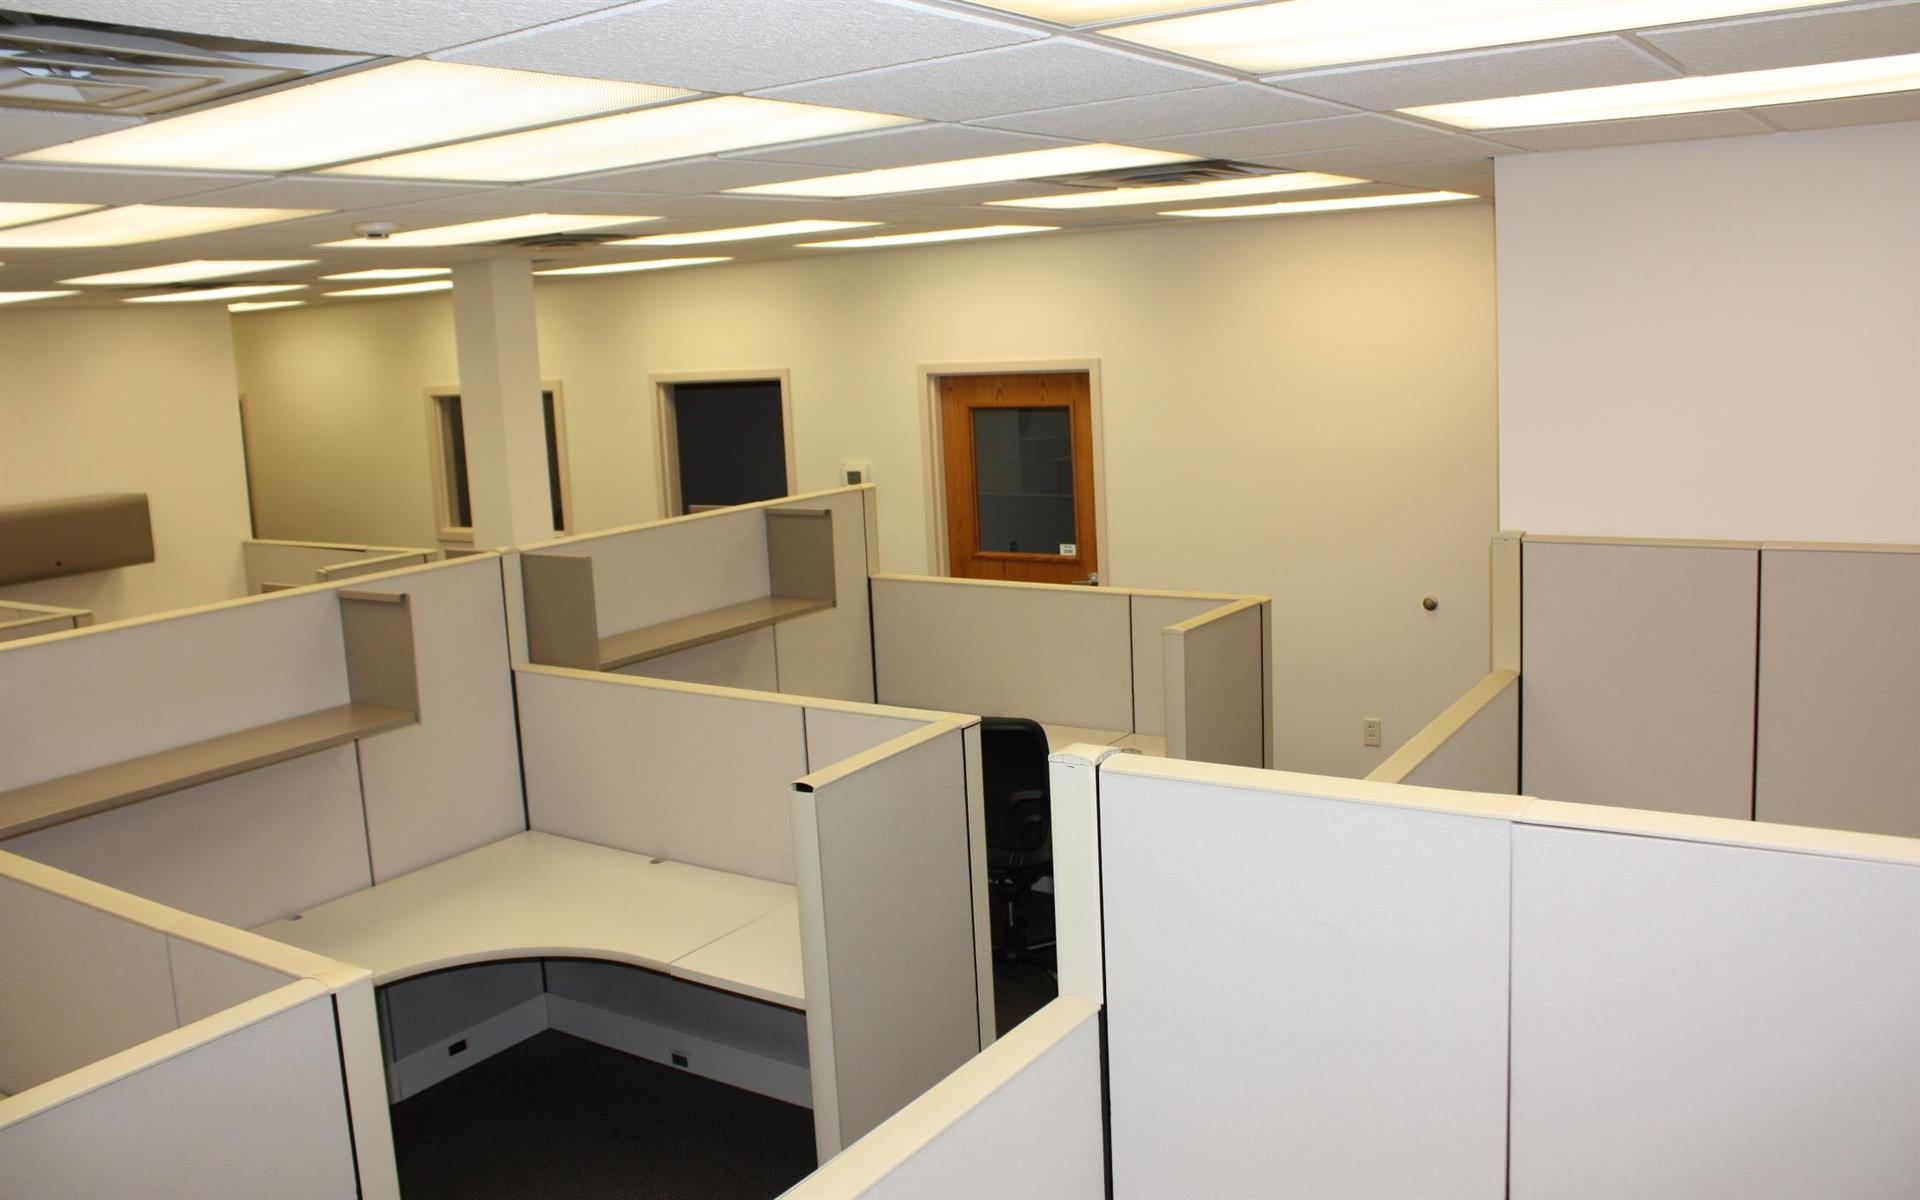 Offices and Coworking in Central NJ - Metuchen, NJ - Suite 205 - Team office